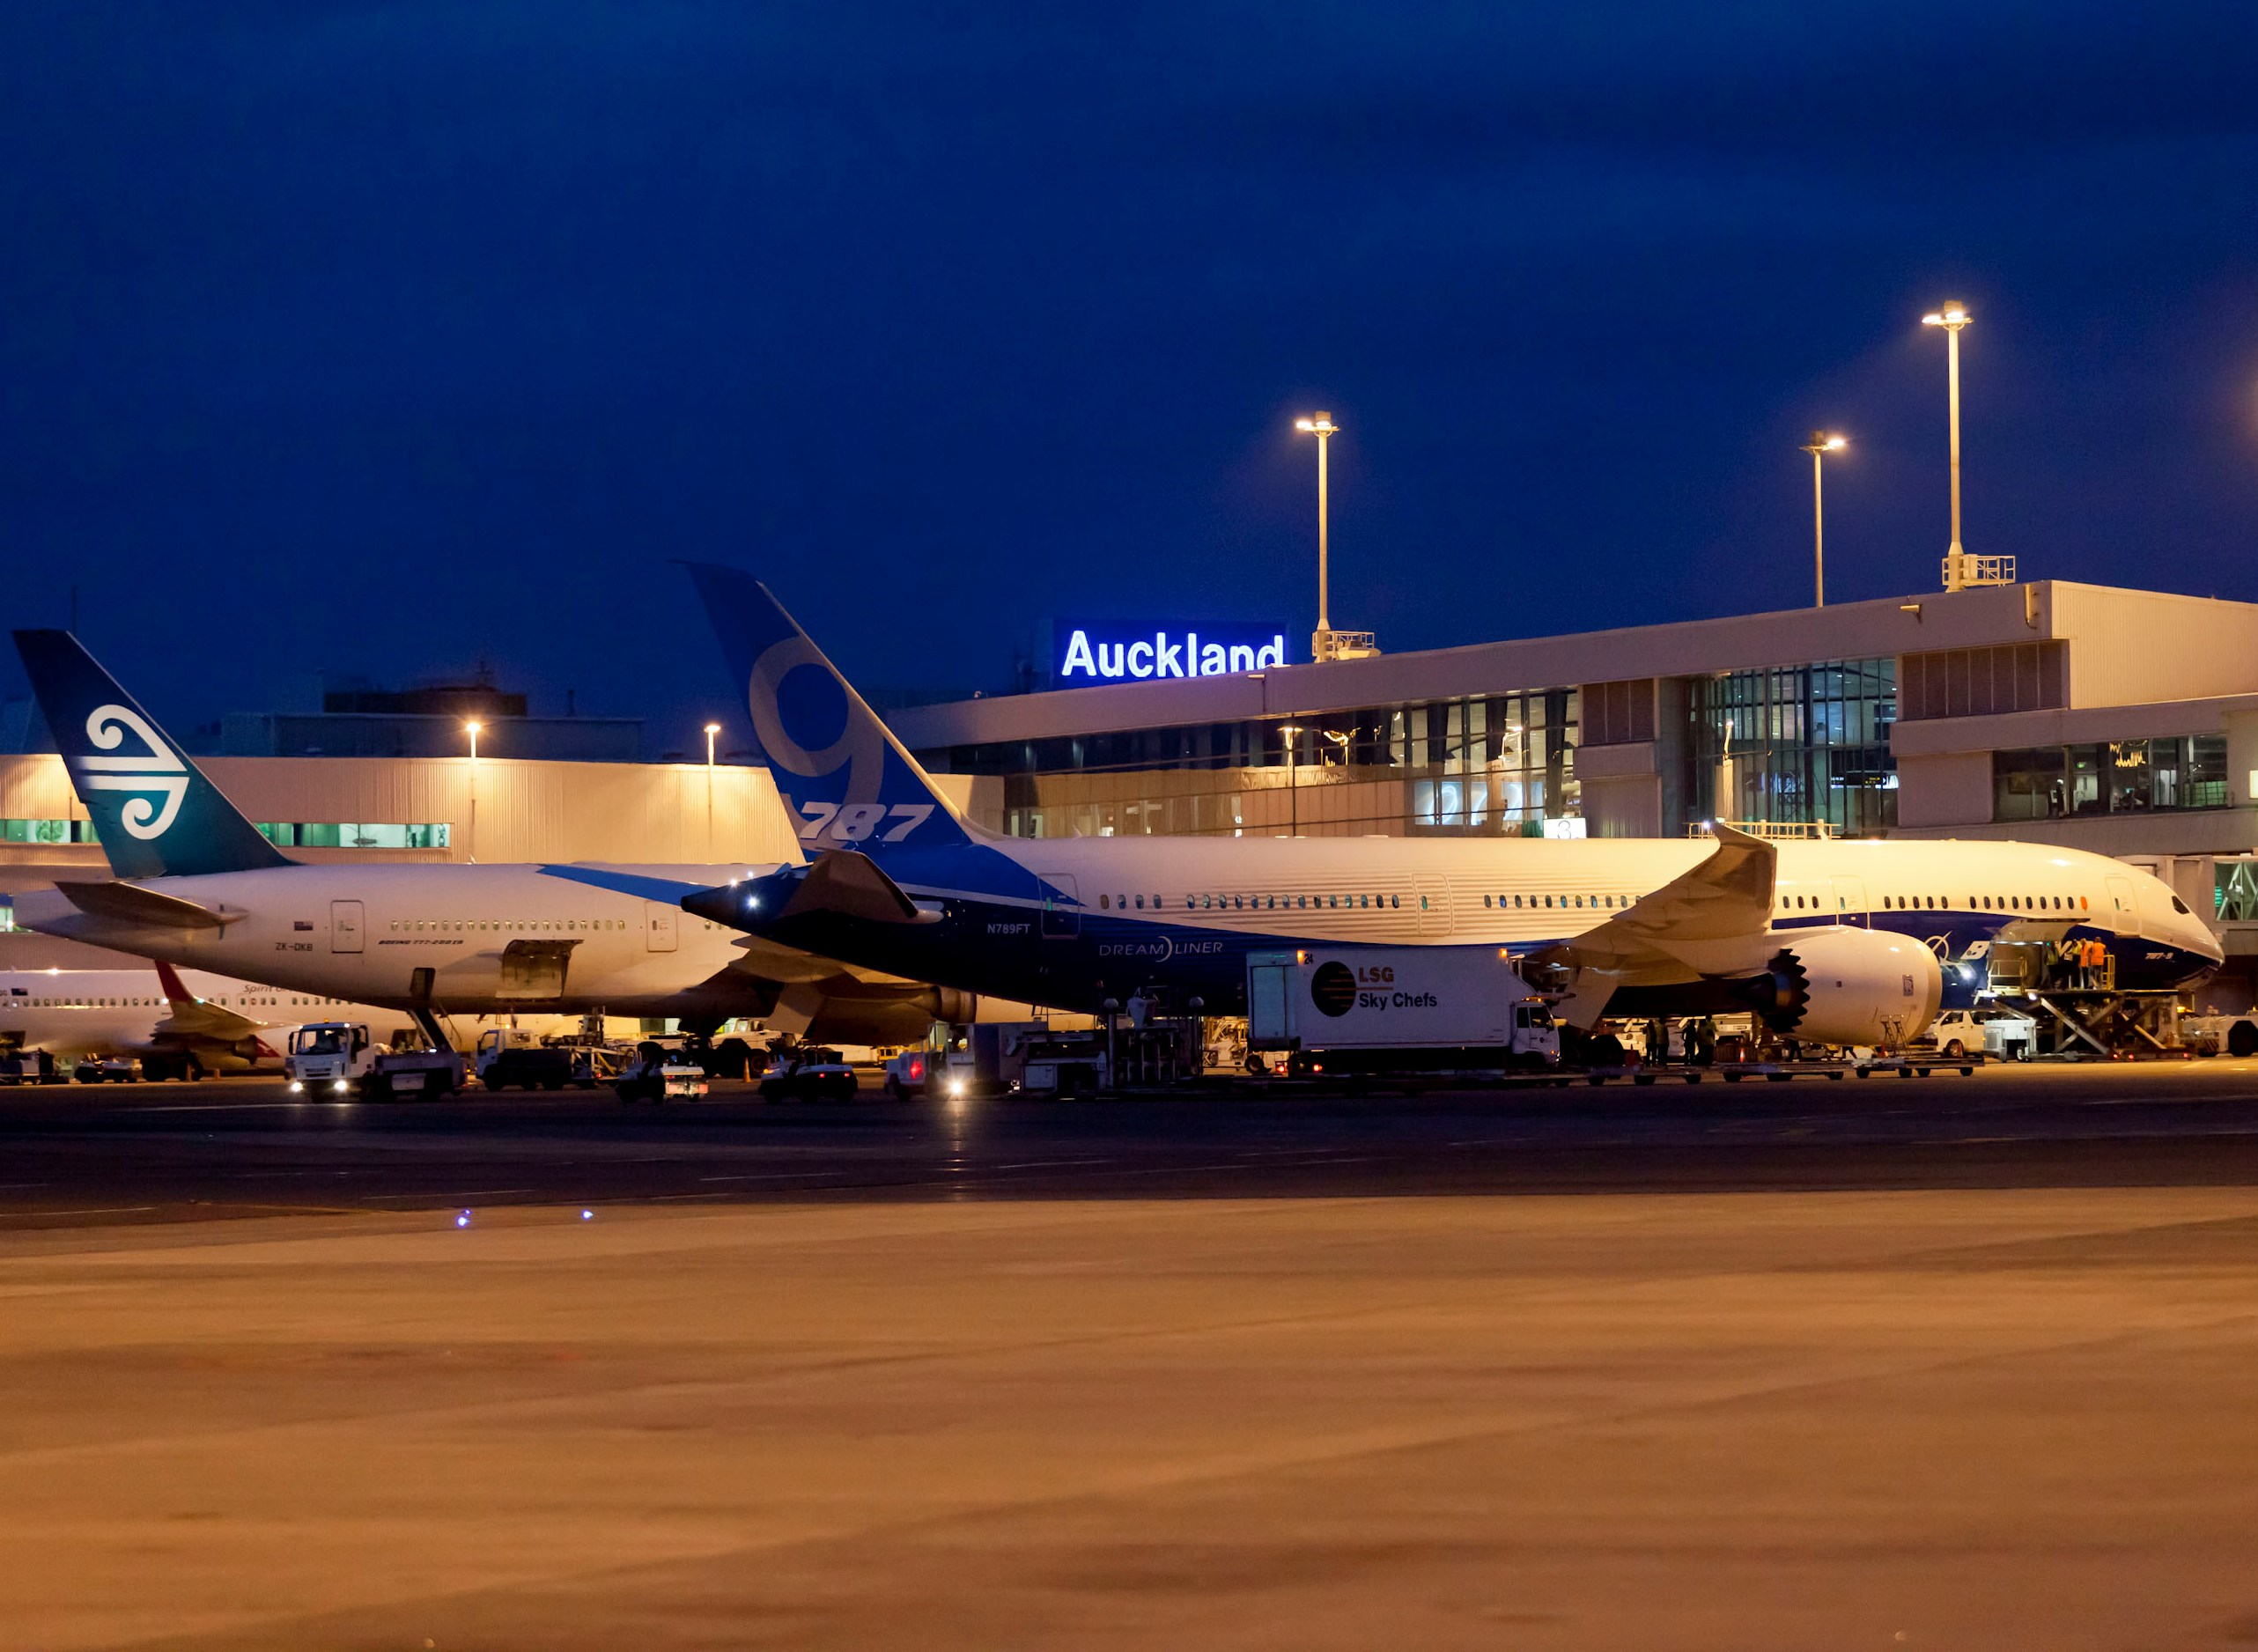 Boeing 787-9 Dreamliner International Debut, Auckland New Zealand